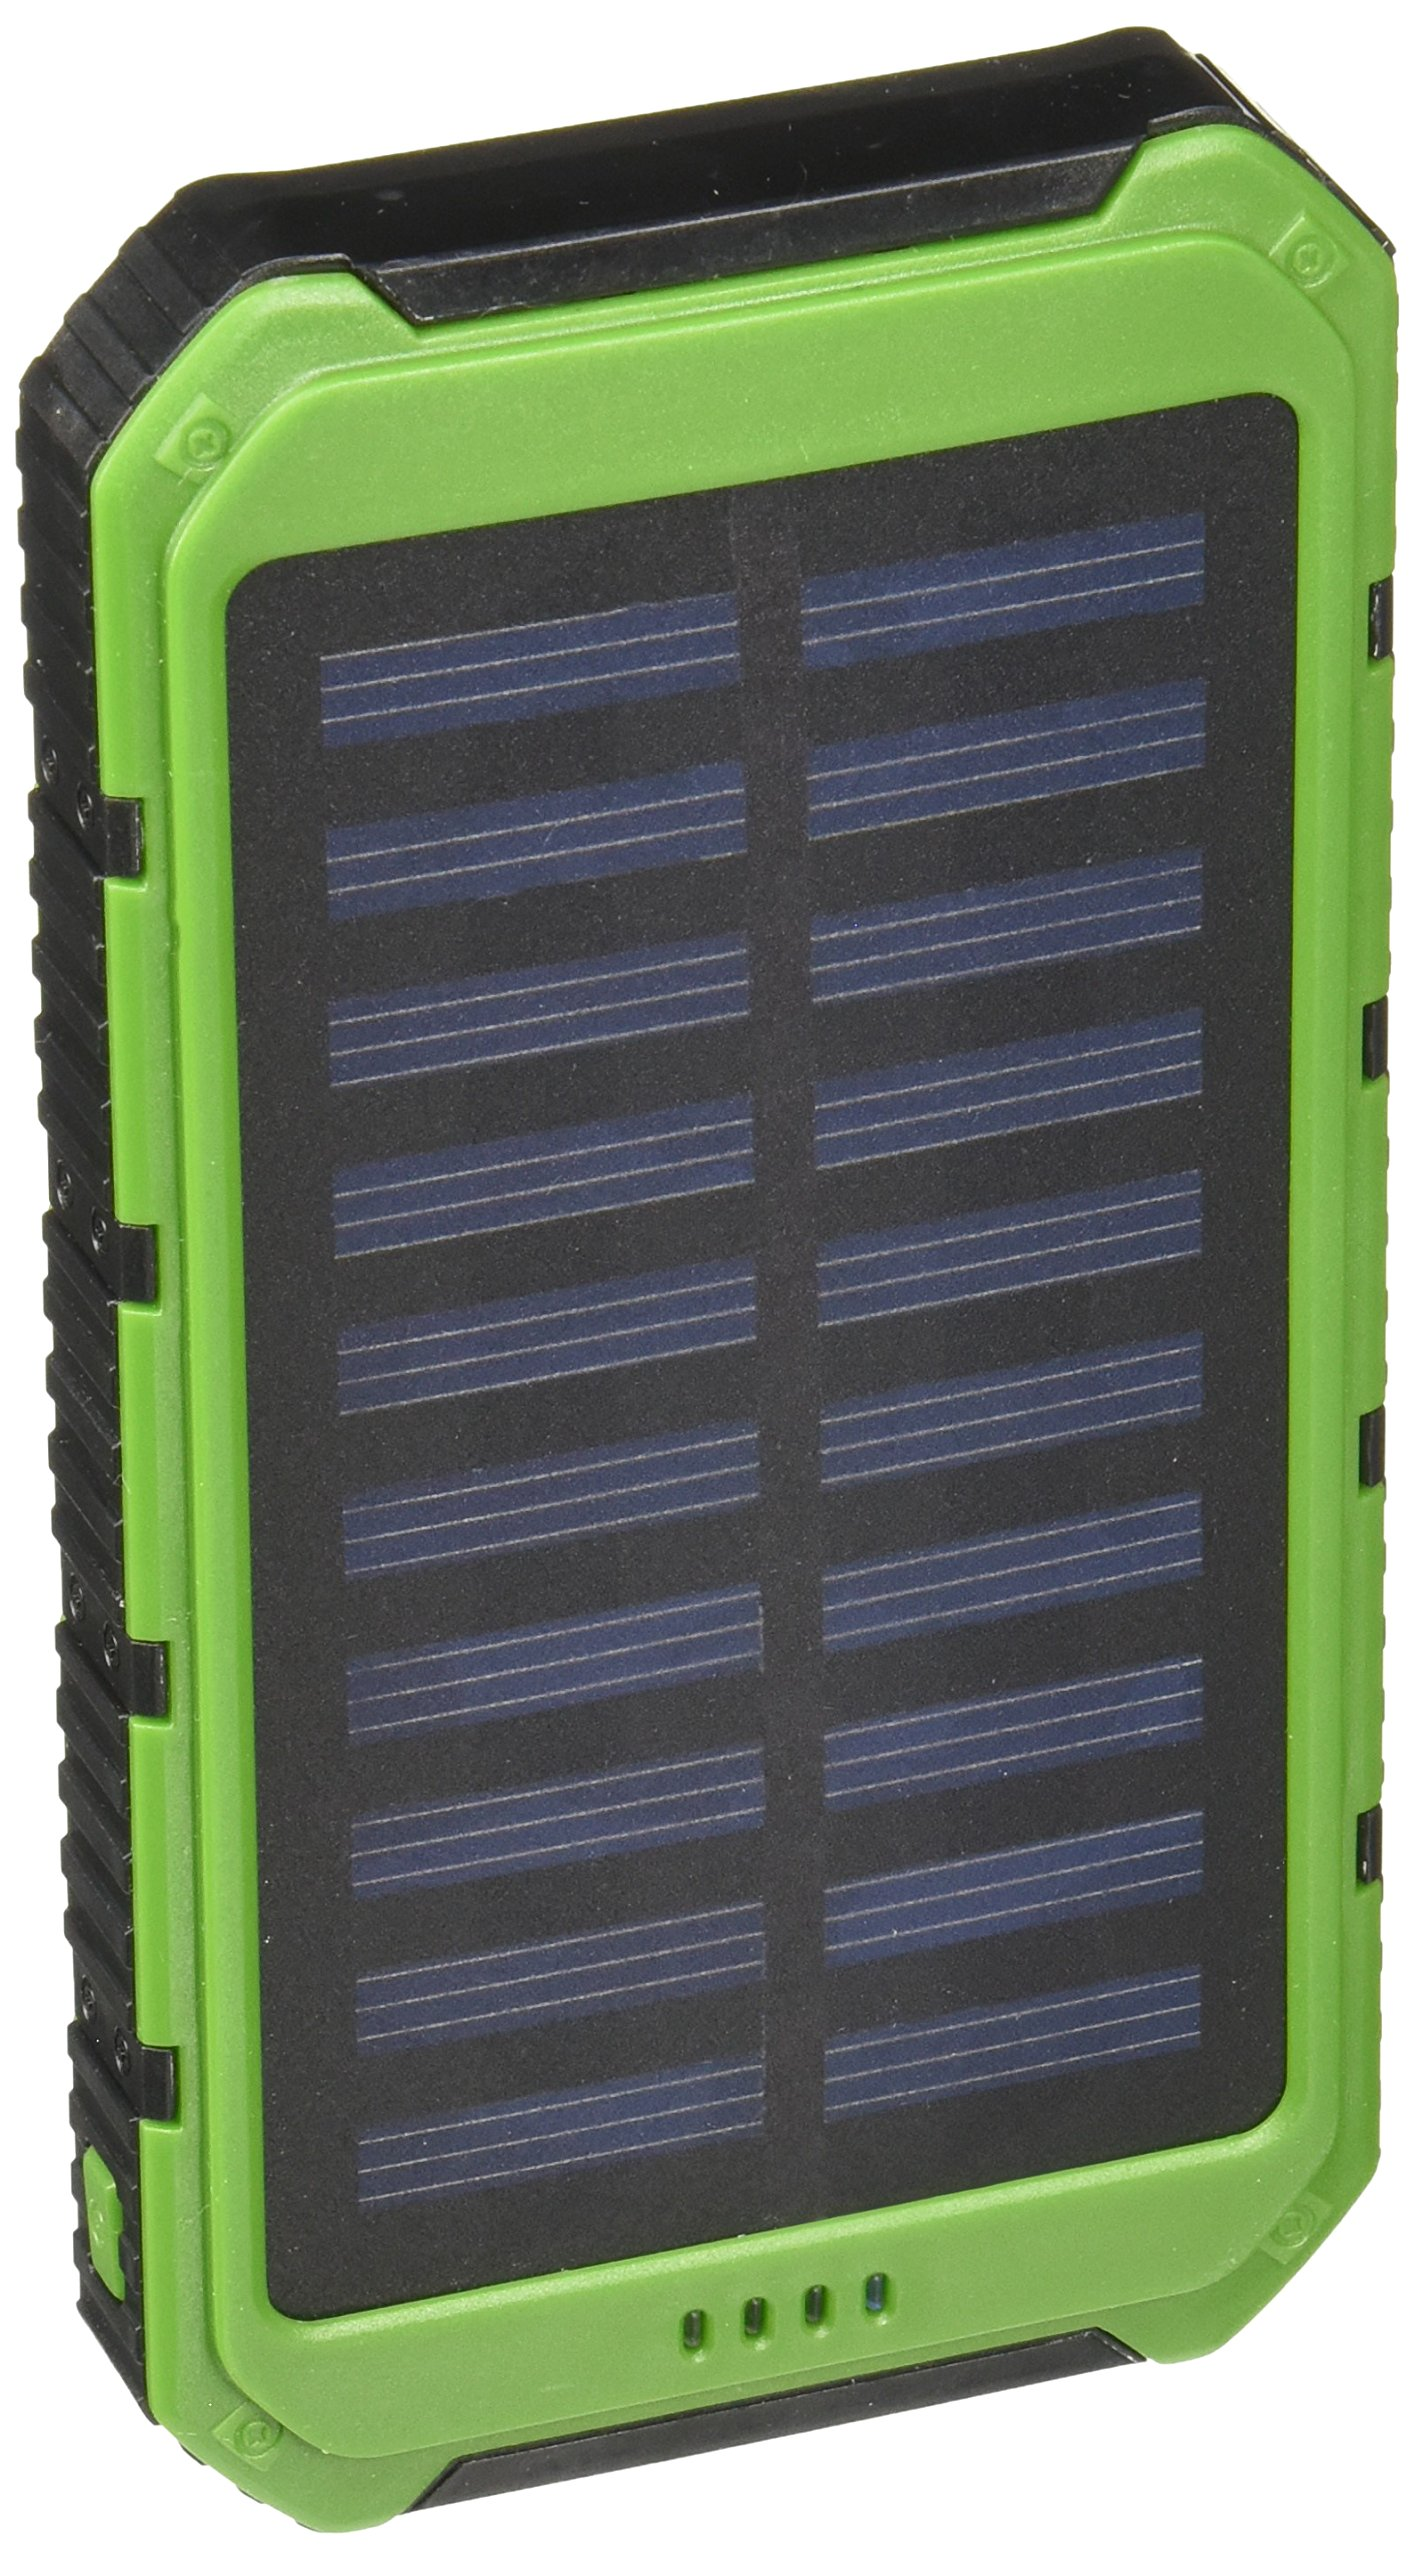 Solar Charger - Creative Edge(TM) Solar-5 Solar Panel 5000mAh Water/ Shock/ Dust Resistant Portable Backup Power Bank Dual USB output, Fits most USB-charged devices (Apple Lightning Adapter Included) by Creative Edge